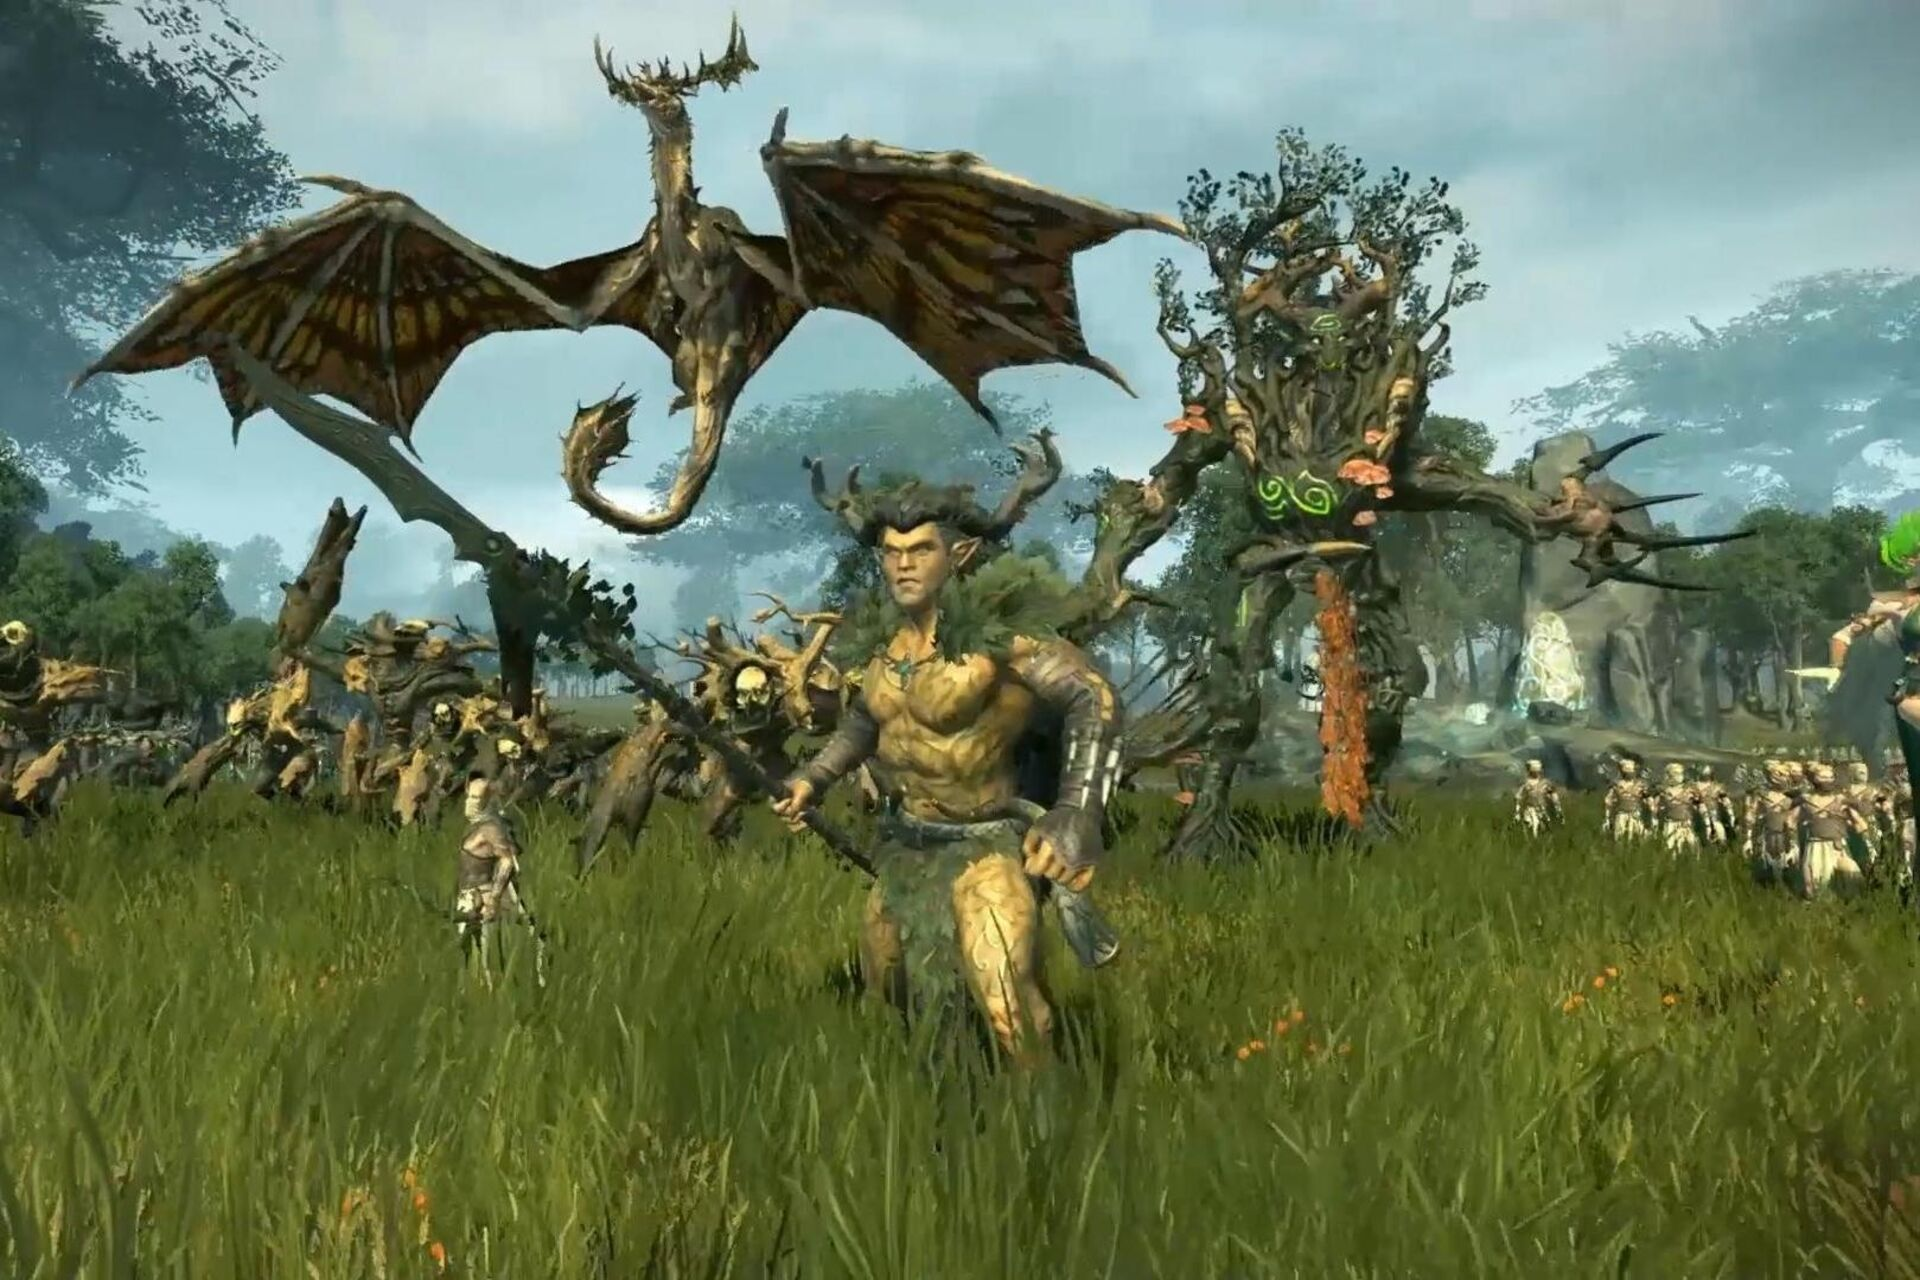 Total War: Warhammer's DLC gets a bit more ambition with the